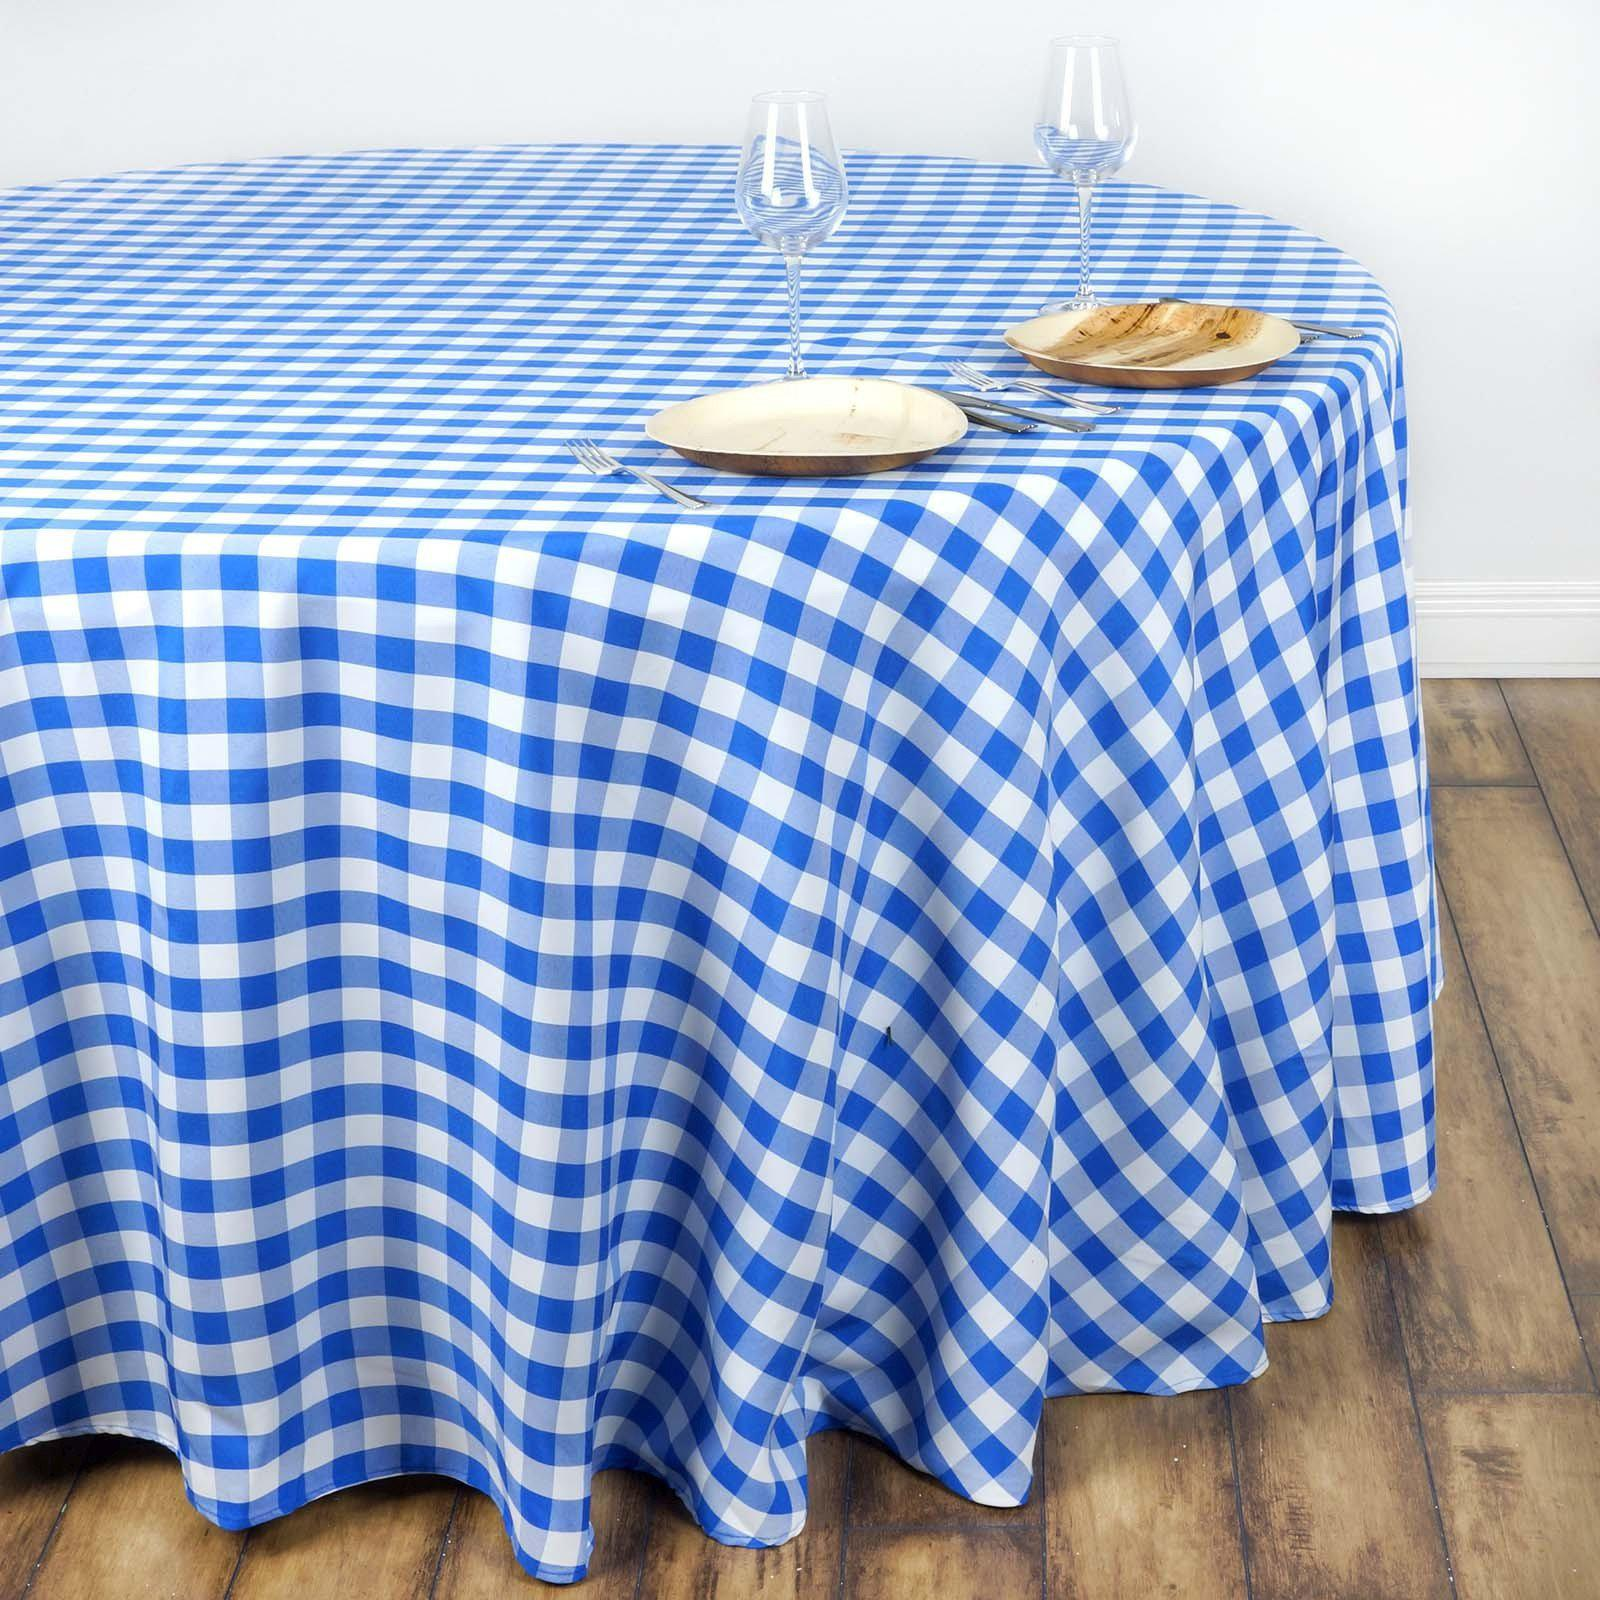 Blue And White Round Tablecloth Buffalo Check In Aqua by willowlanetextiles Rustic Plaid Cotton Sateen Circle Tablecloth by Spoonflower